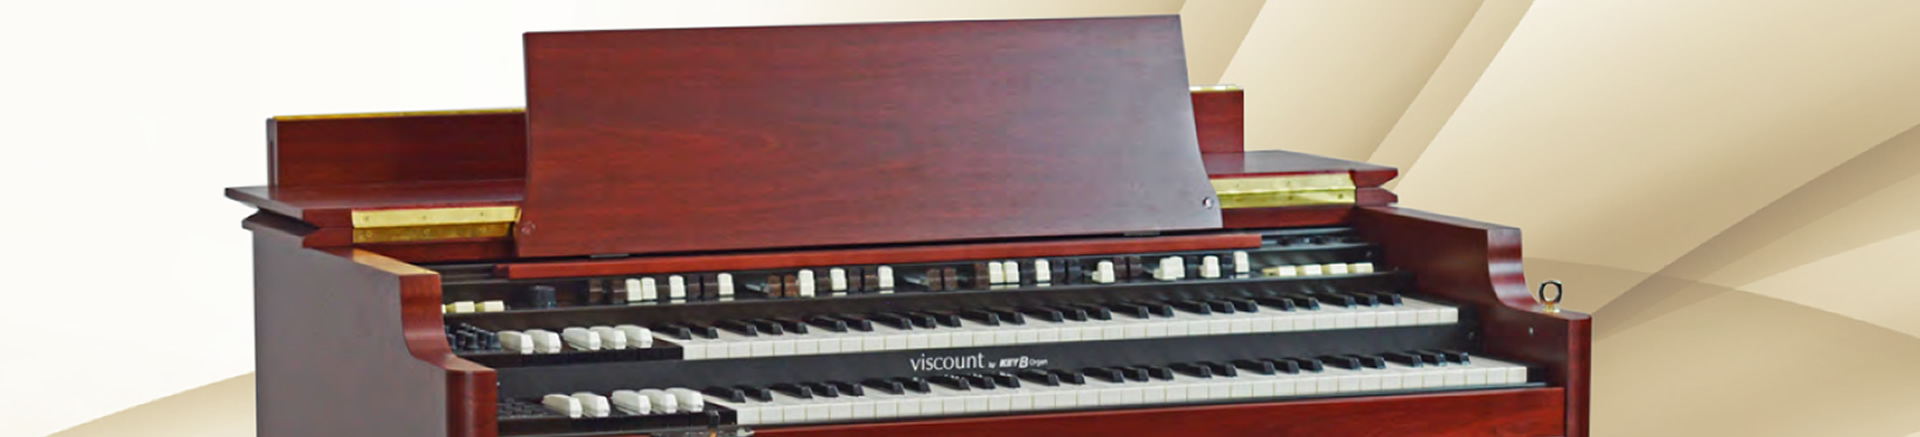 Viscount Legend by KeyB Organ